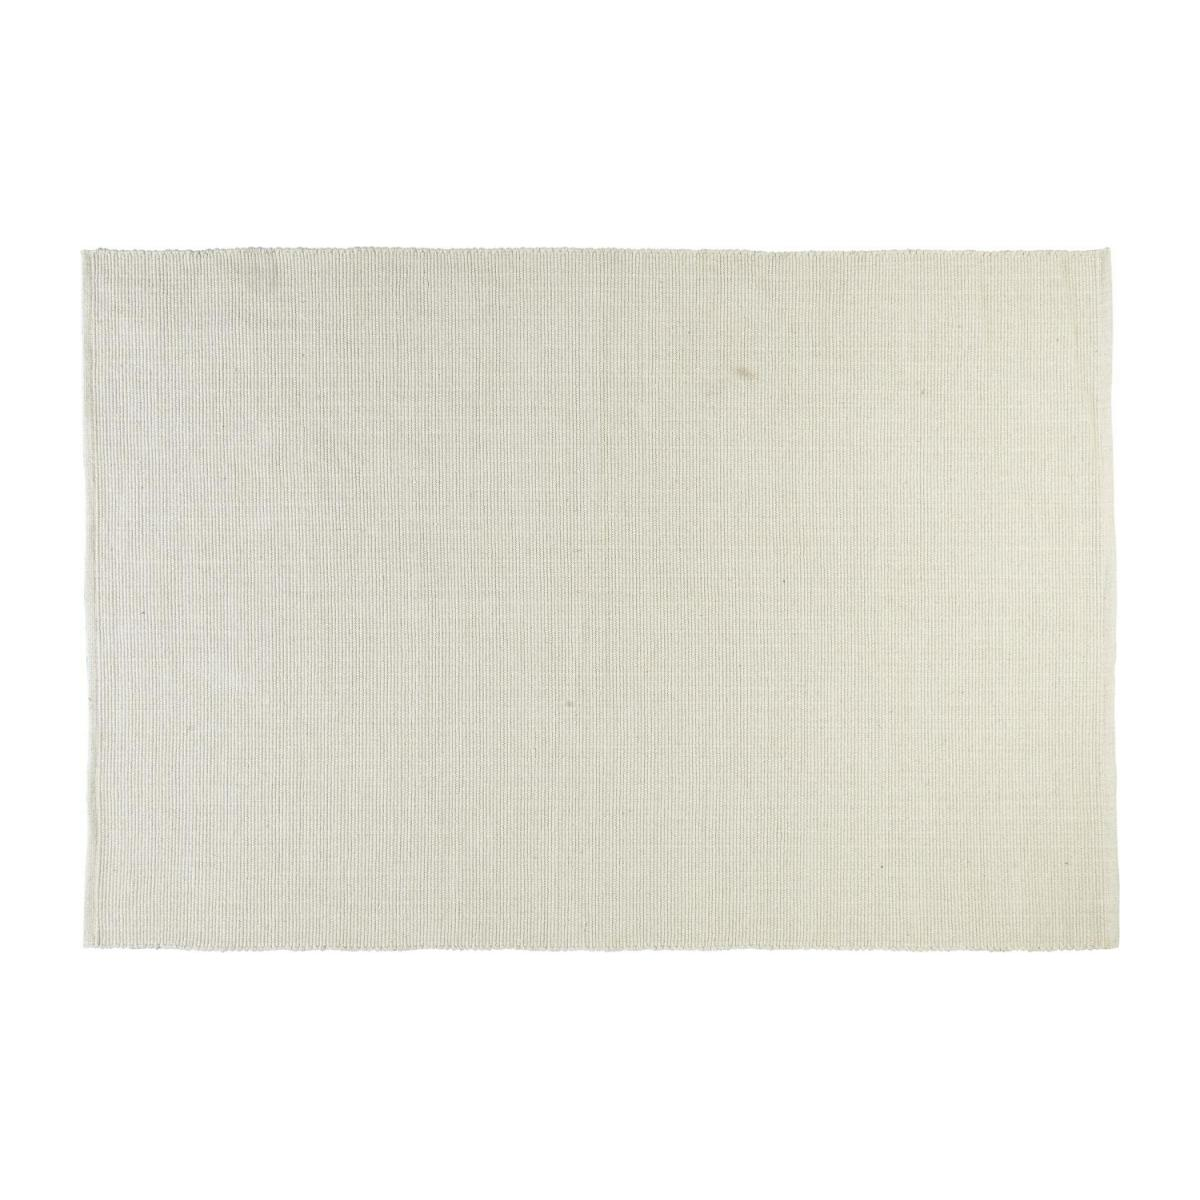 Flat hand-tufted cotton rug 120 x 180 n°1